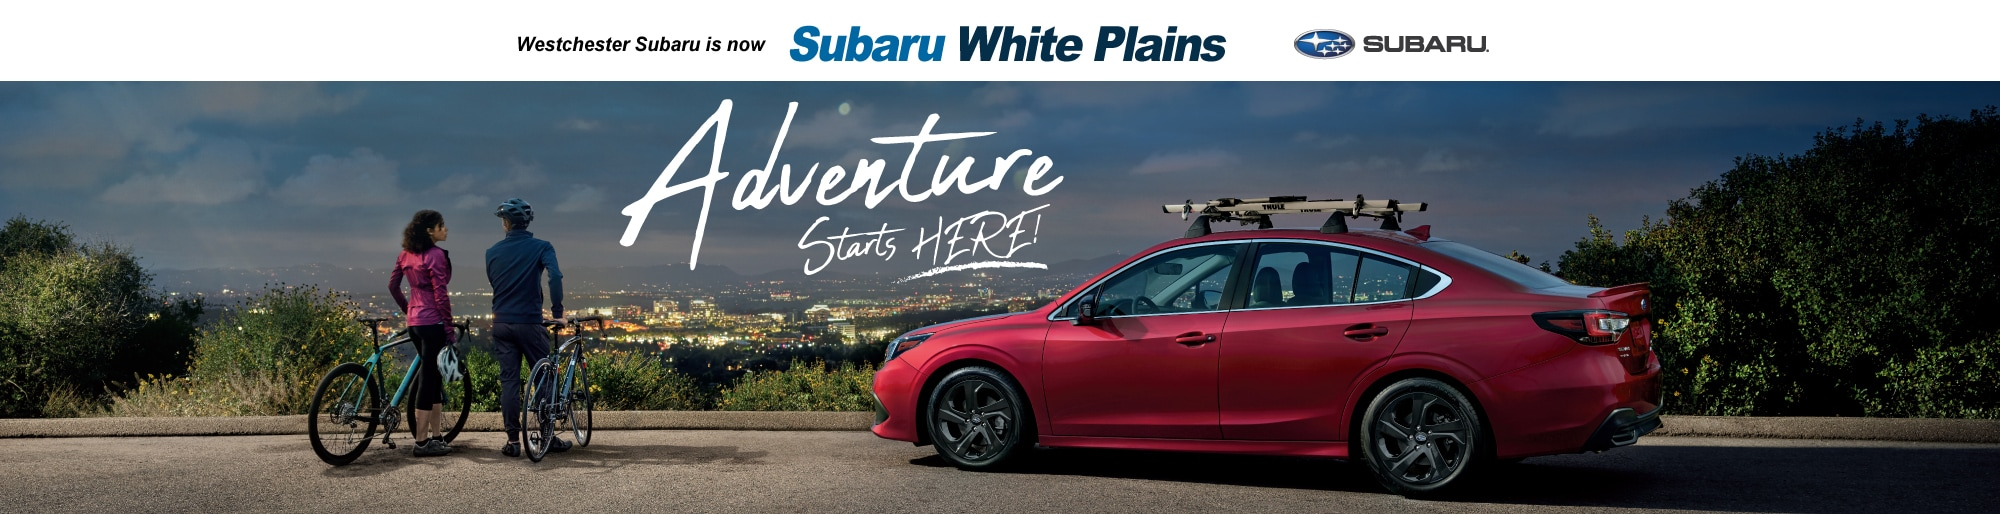 Subaru Lease Deal Image